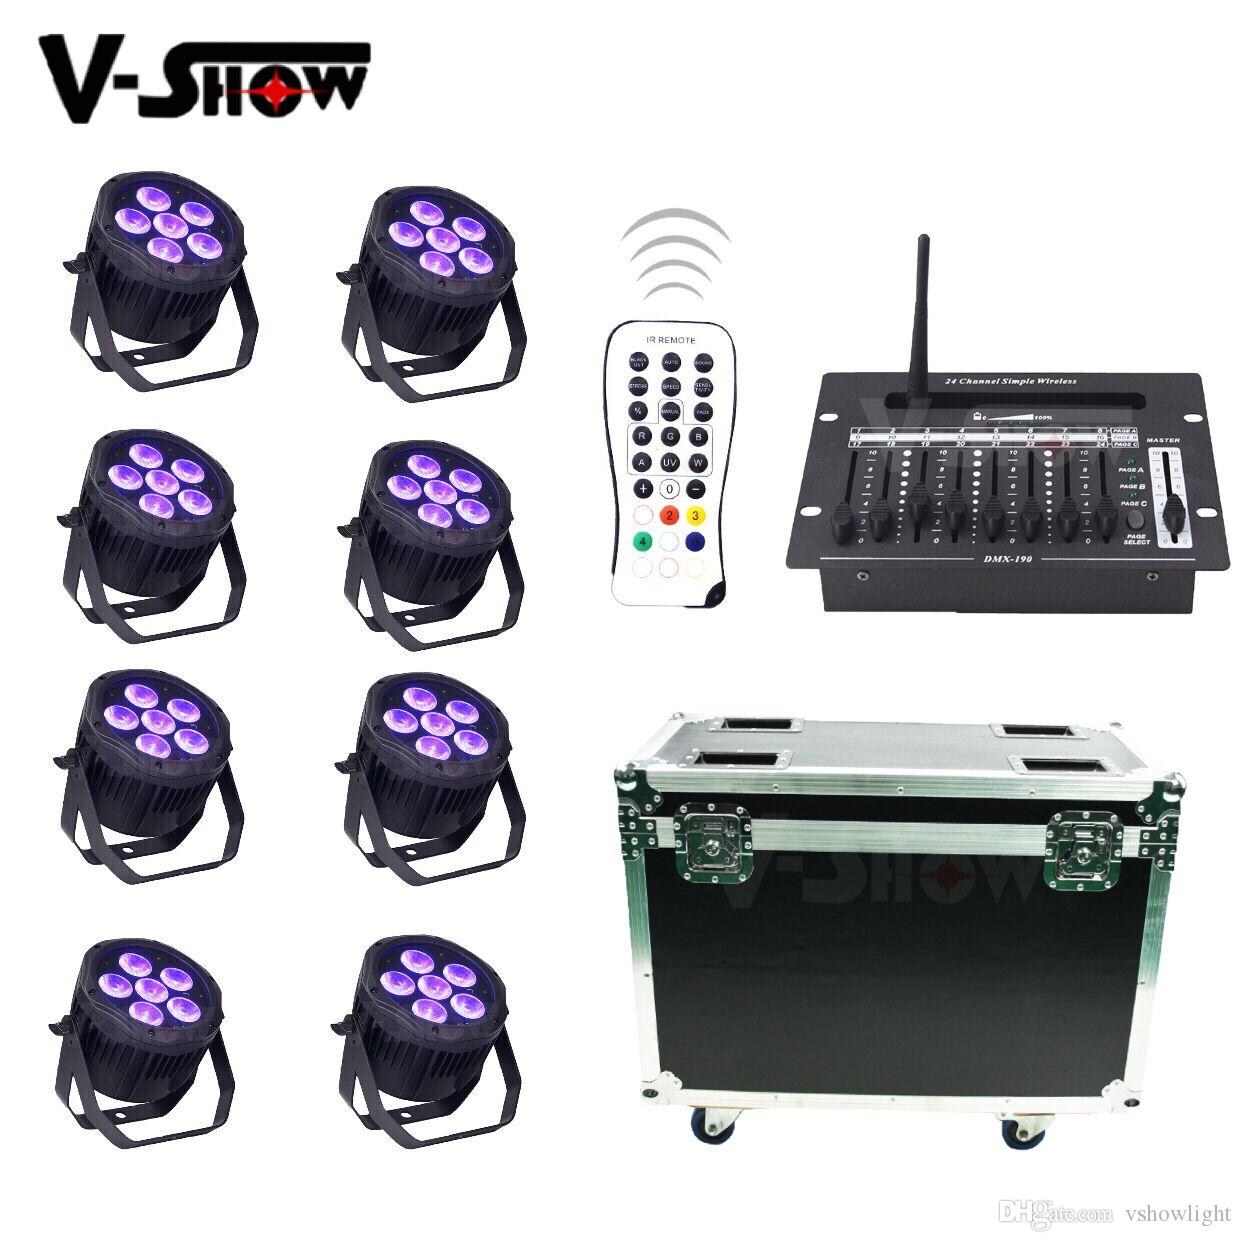 8pcs with 24CH DMX Controller IP65 OUTDOOR 6x18W Battery wireless RGBWA+UV 6in1 LED uplight led par for Hotel Wedding lighting